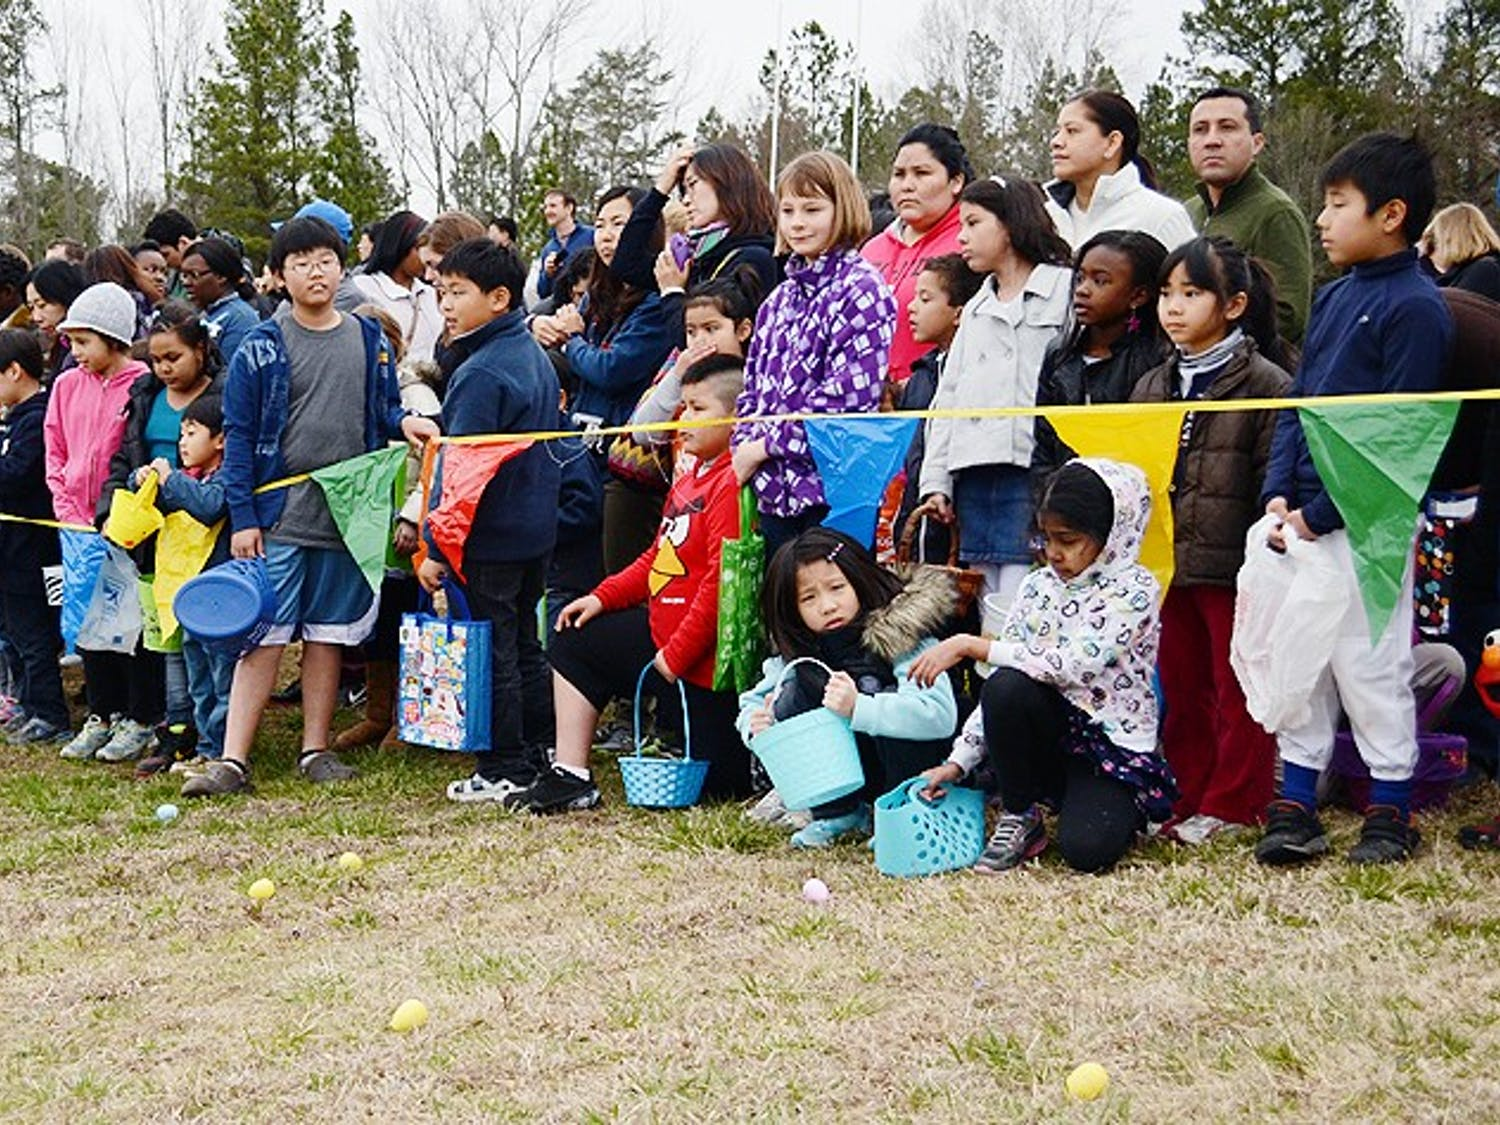 Children line up for the Orange County Easter Egg Hunt.